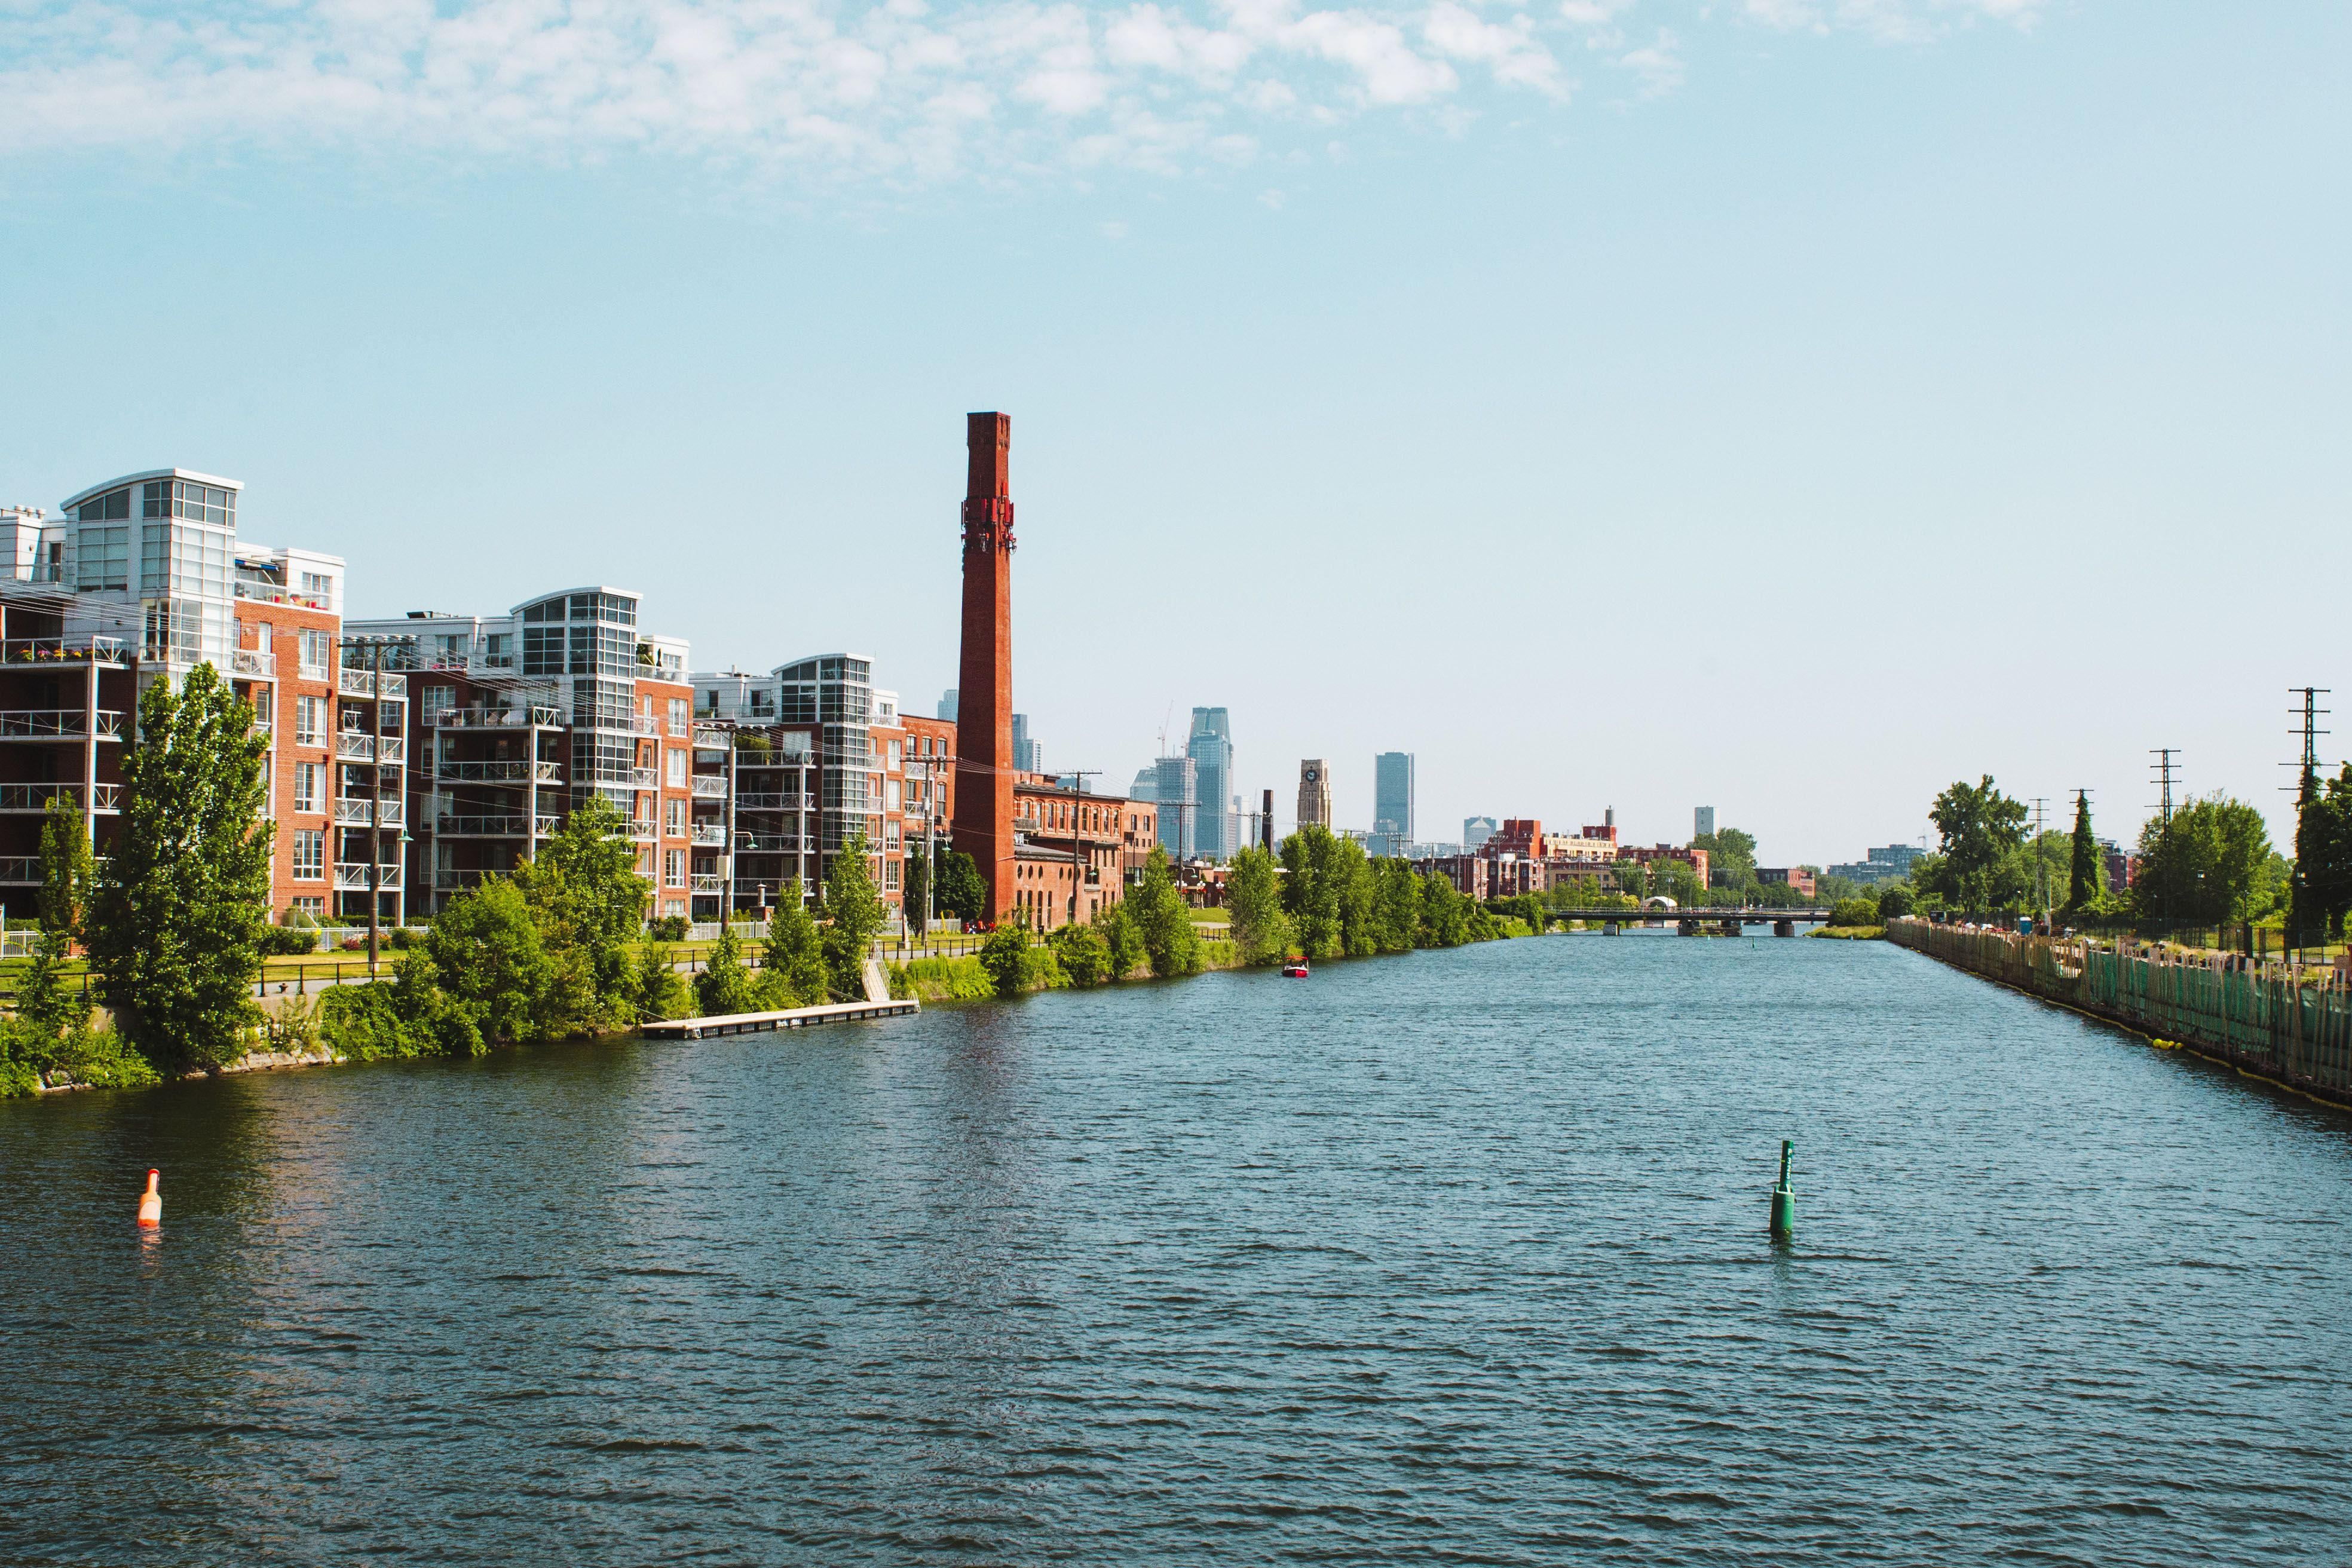 Lachine Canal Attractions and Activities in Montreal